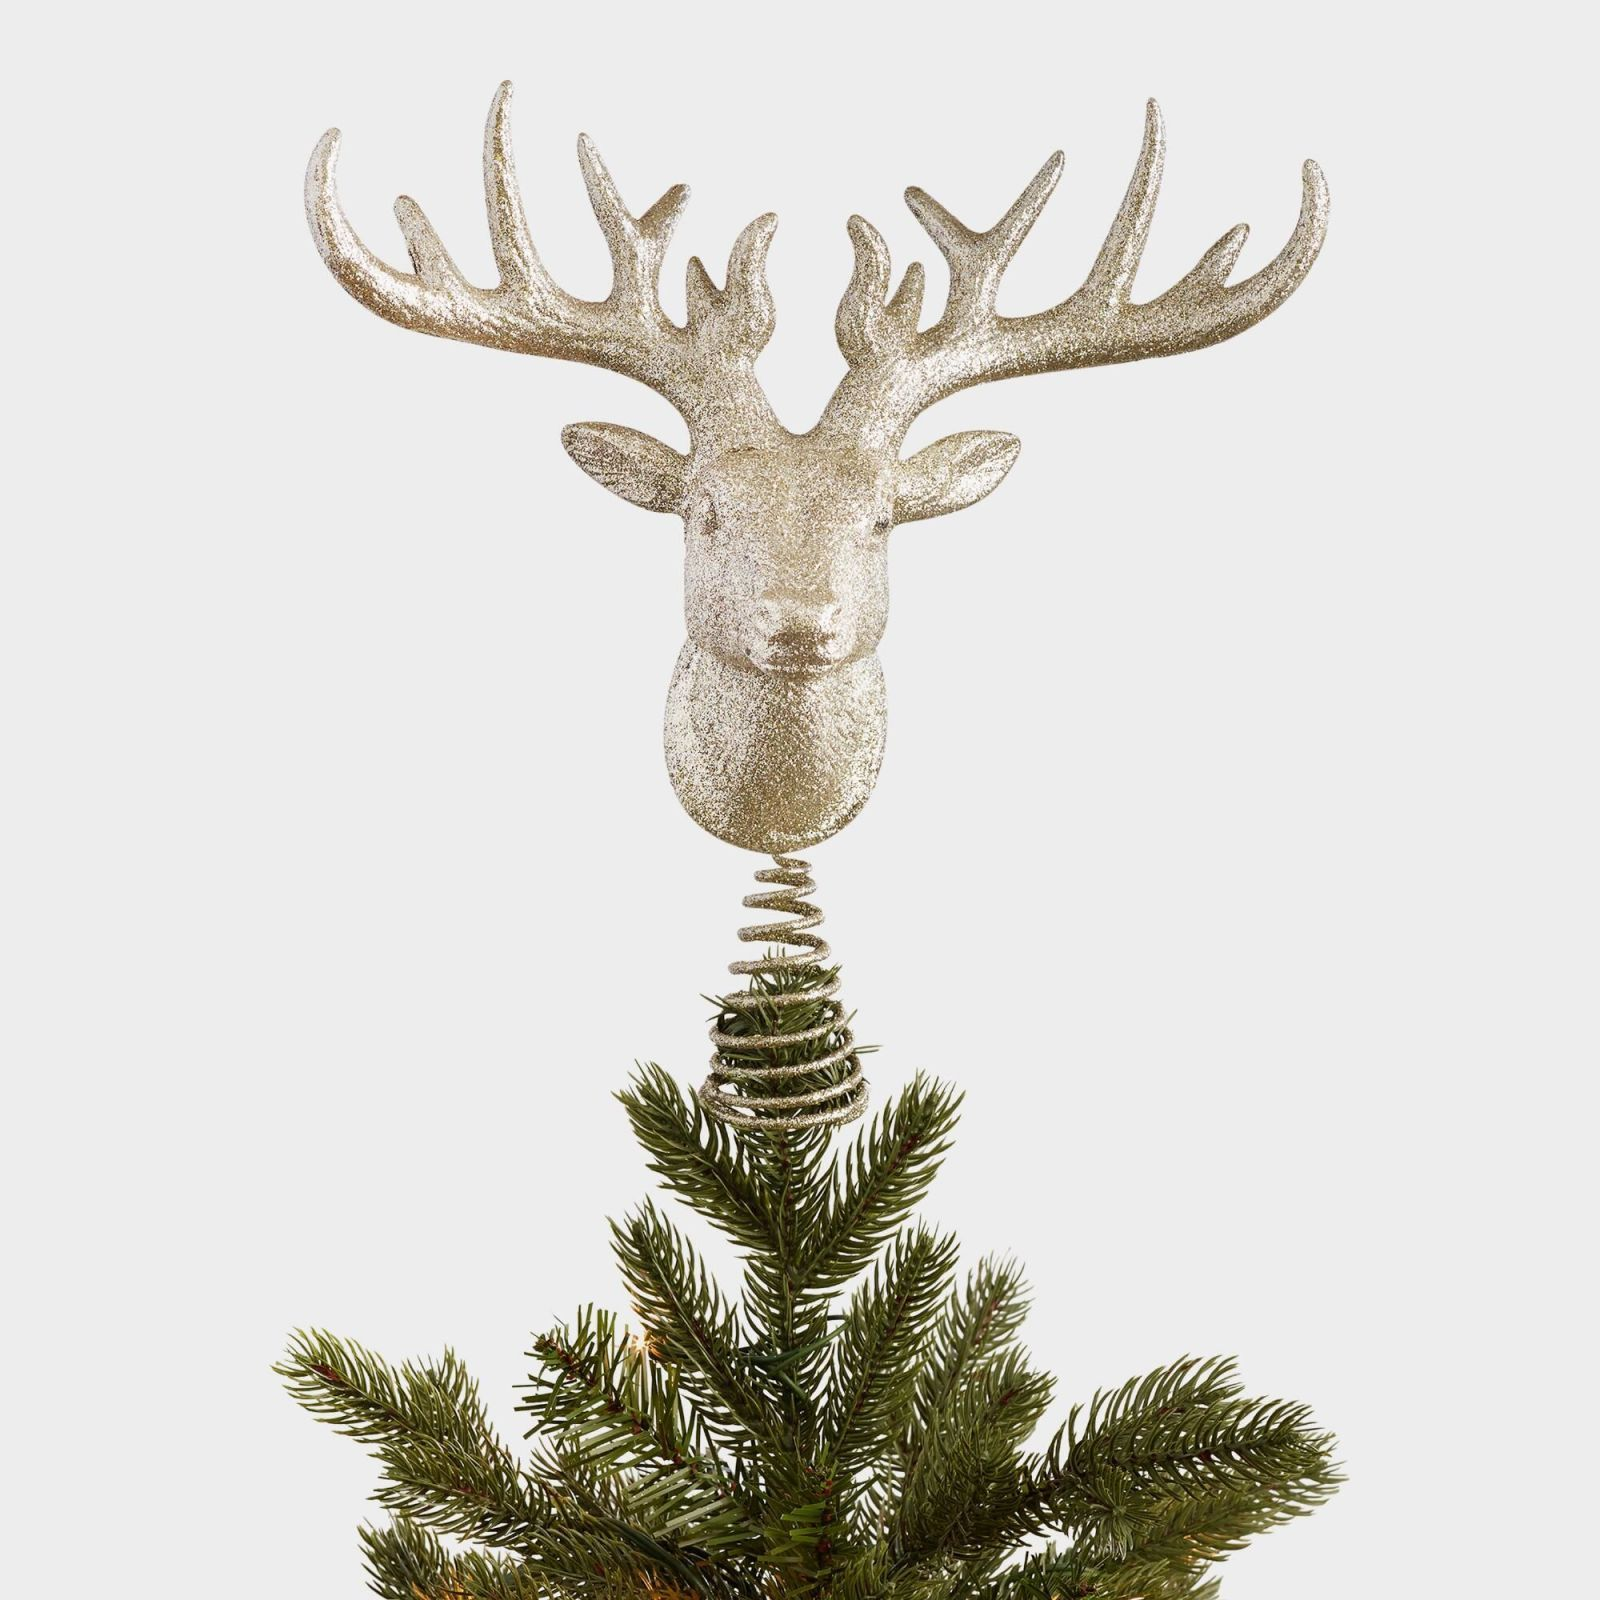 25 Unique Christmas Tree Toppers to Cap off Your Holiday Decor ...